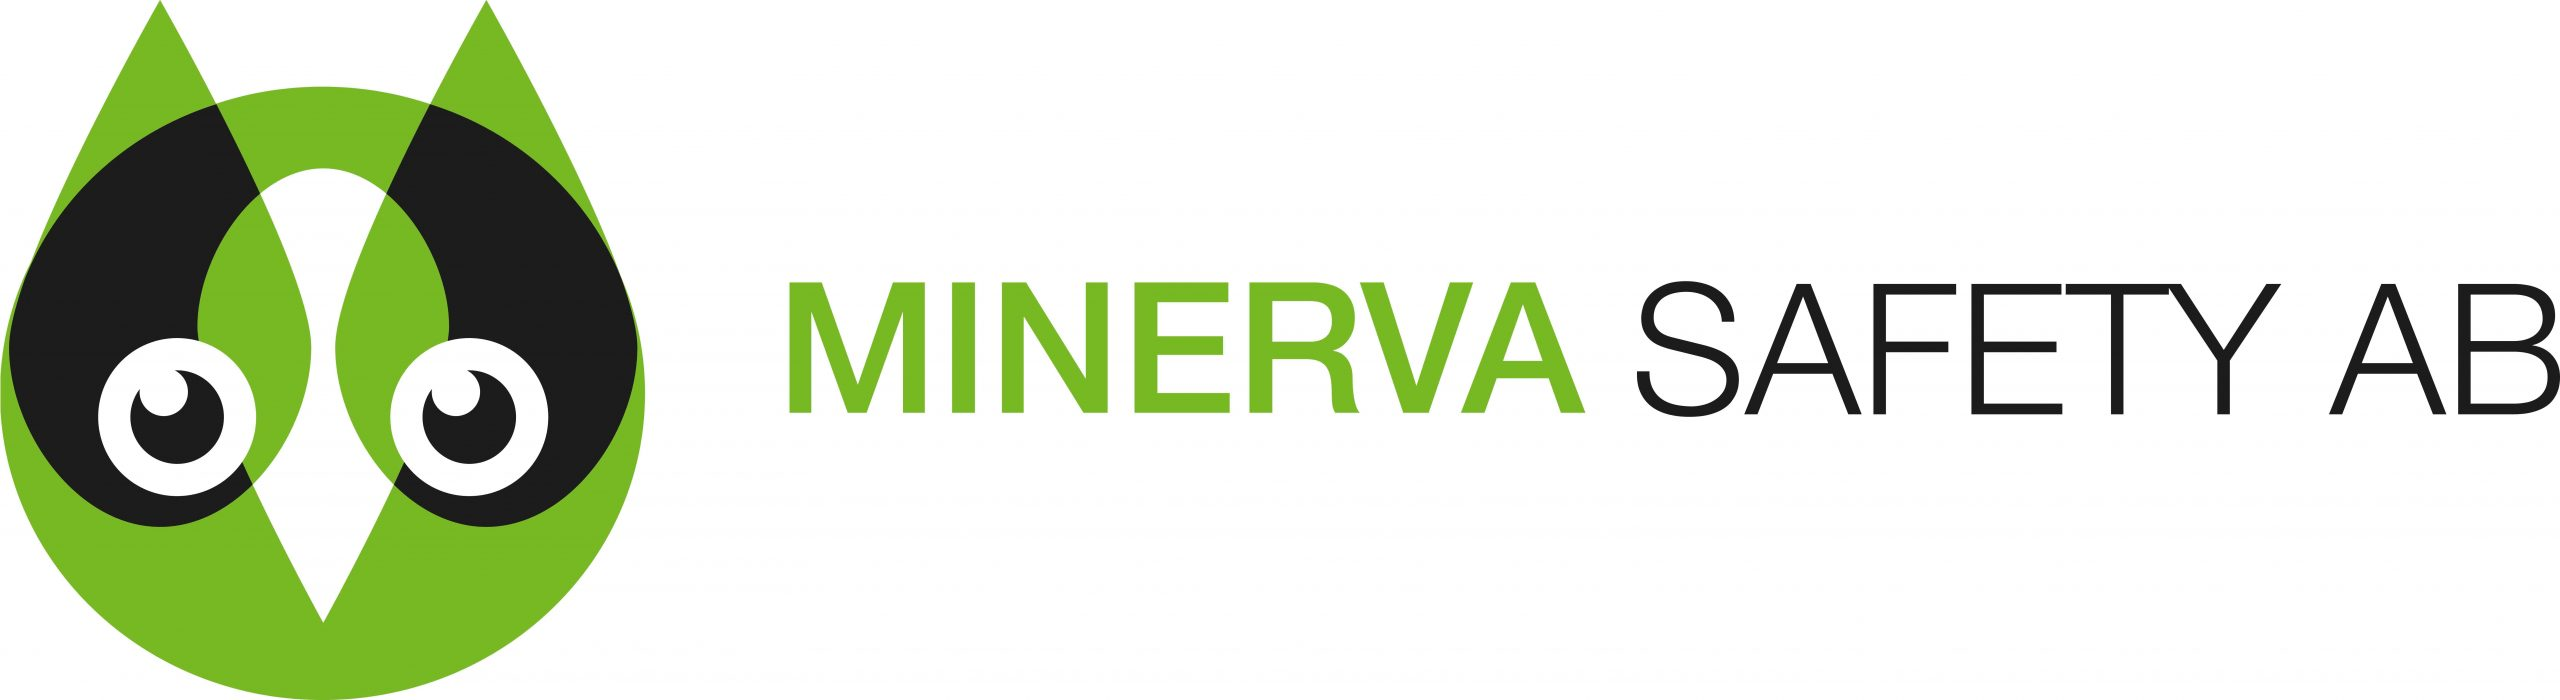 Minerva Safety